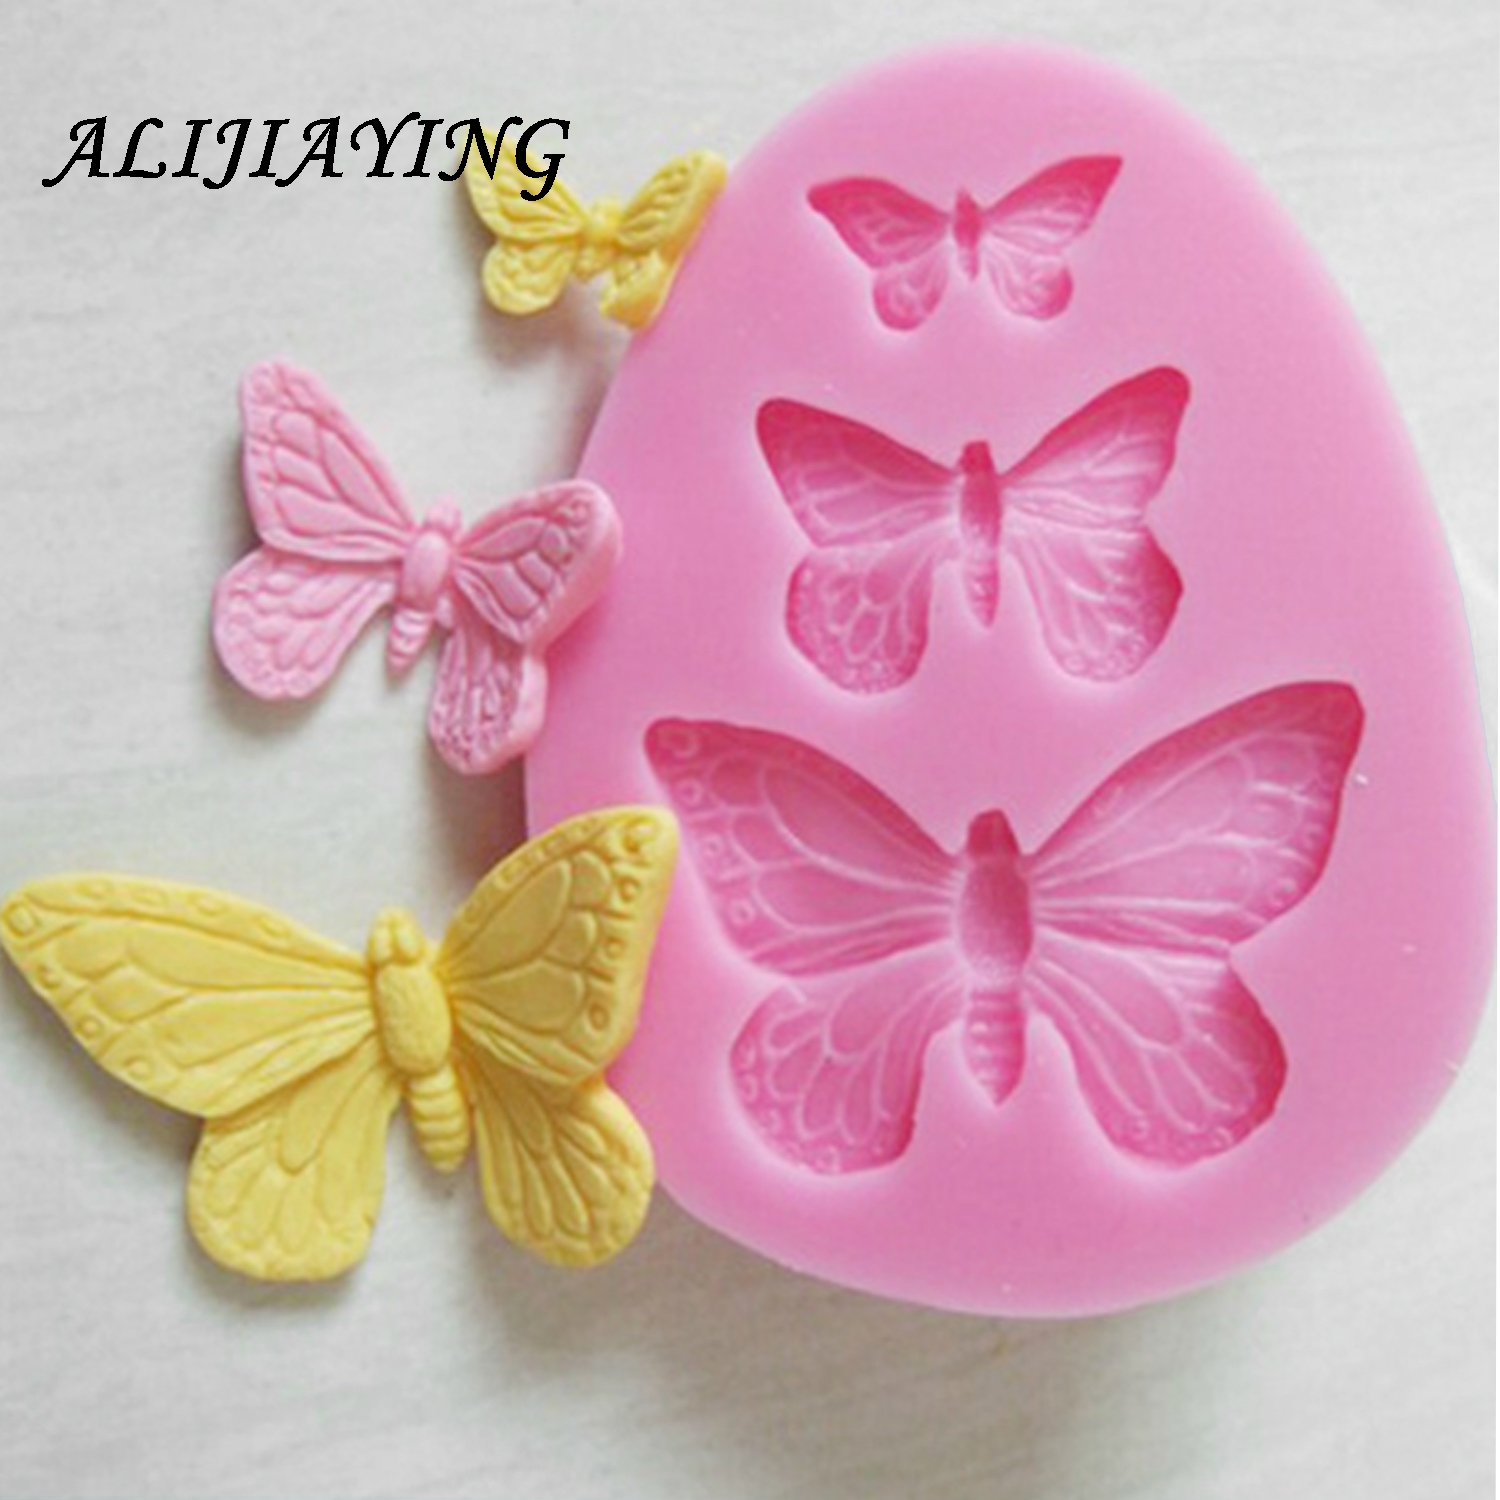 1Pcs Sugarcraft Butterfly Silicone Molds Fondant Mold Cake Decorating Tools Chocolate Moulds Wedding Decoration Mould D0101